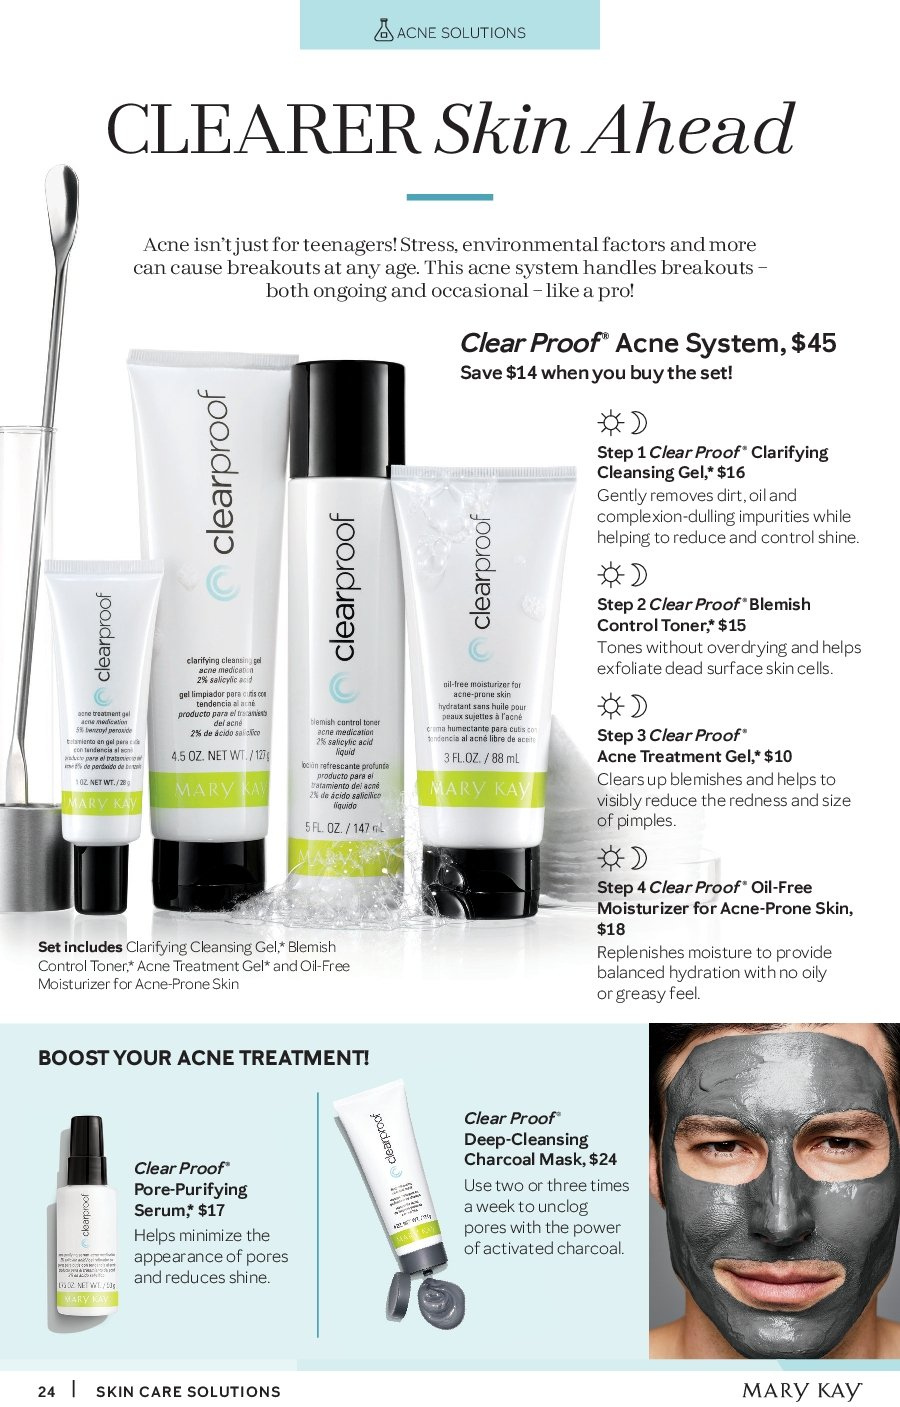 Mary Kay Flyer 02 16 2019 05 15 2019 Weekly Ads